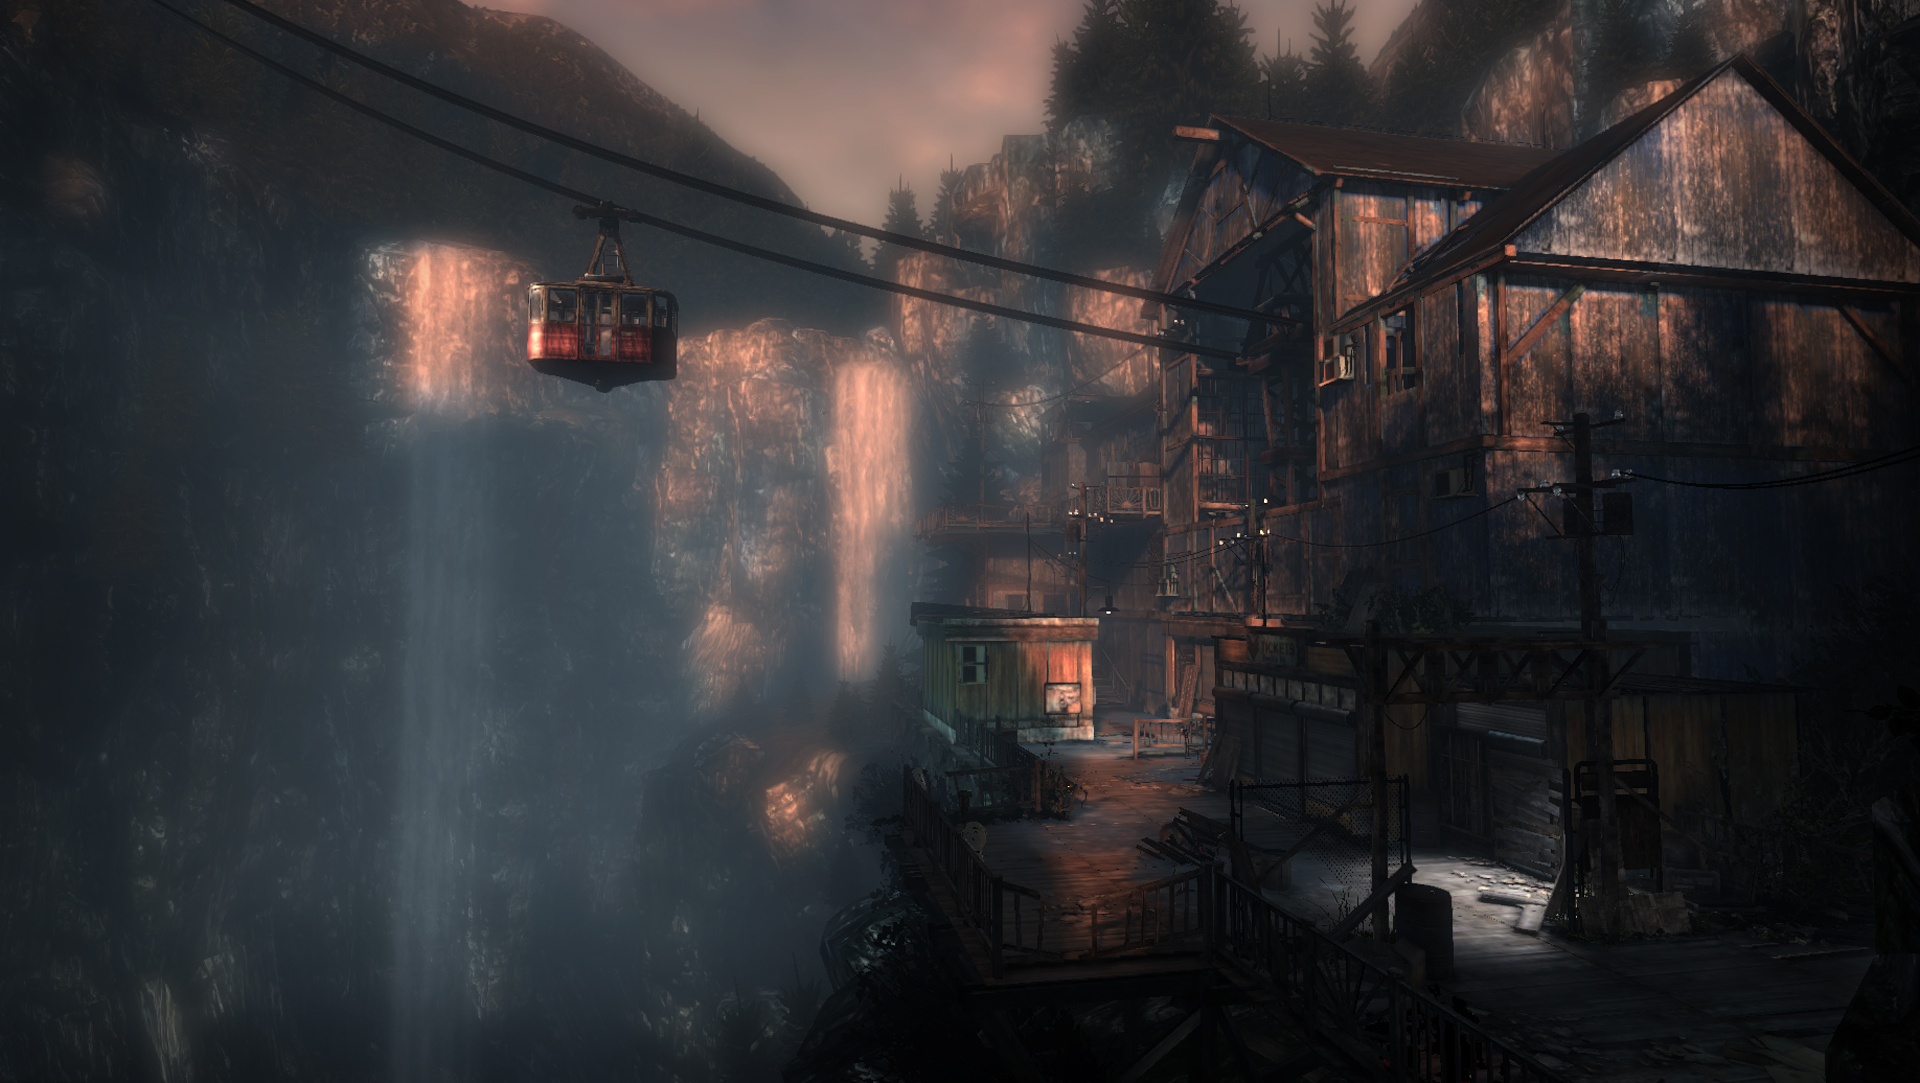 Silent Hill: Downpour Screenshots for PlayStation 3 - MobyGames